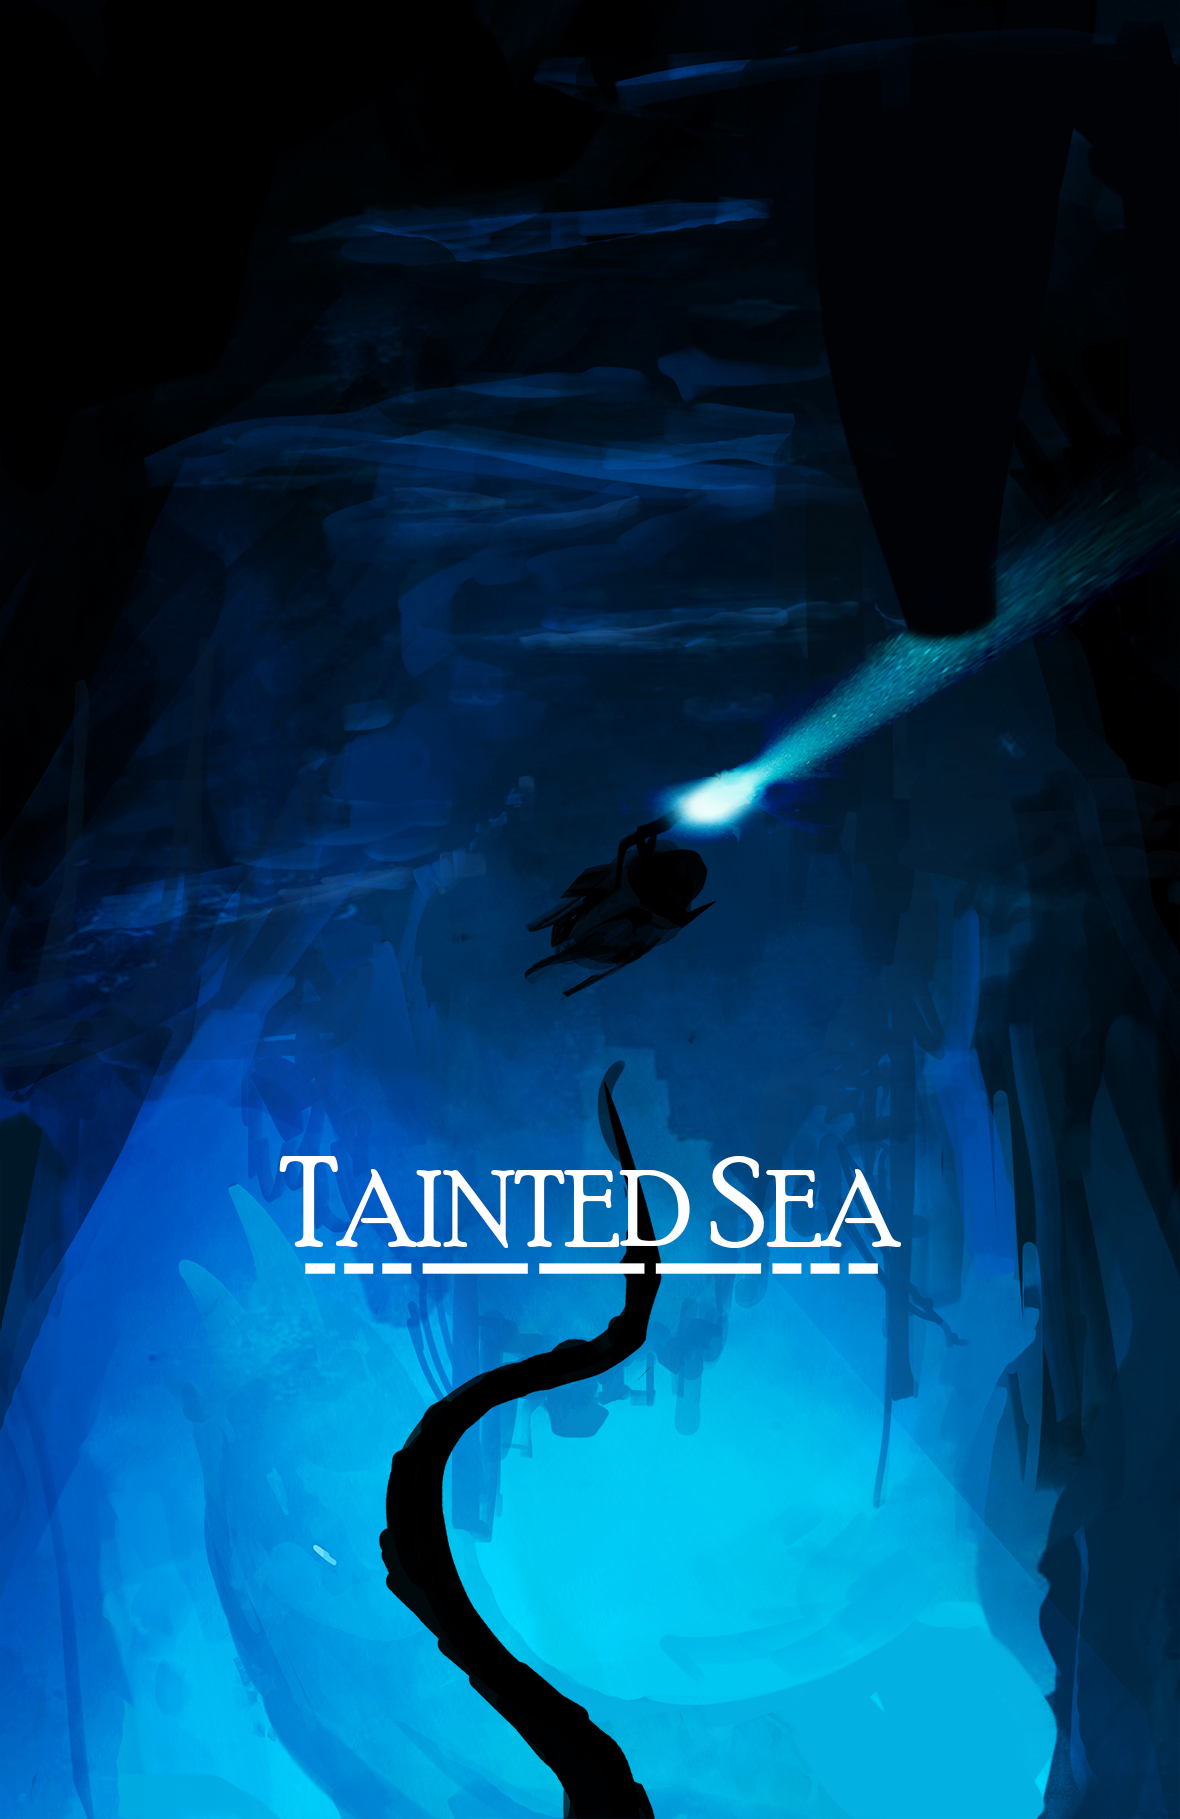 Tainted Sea VR